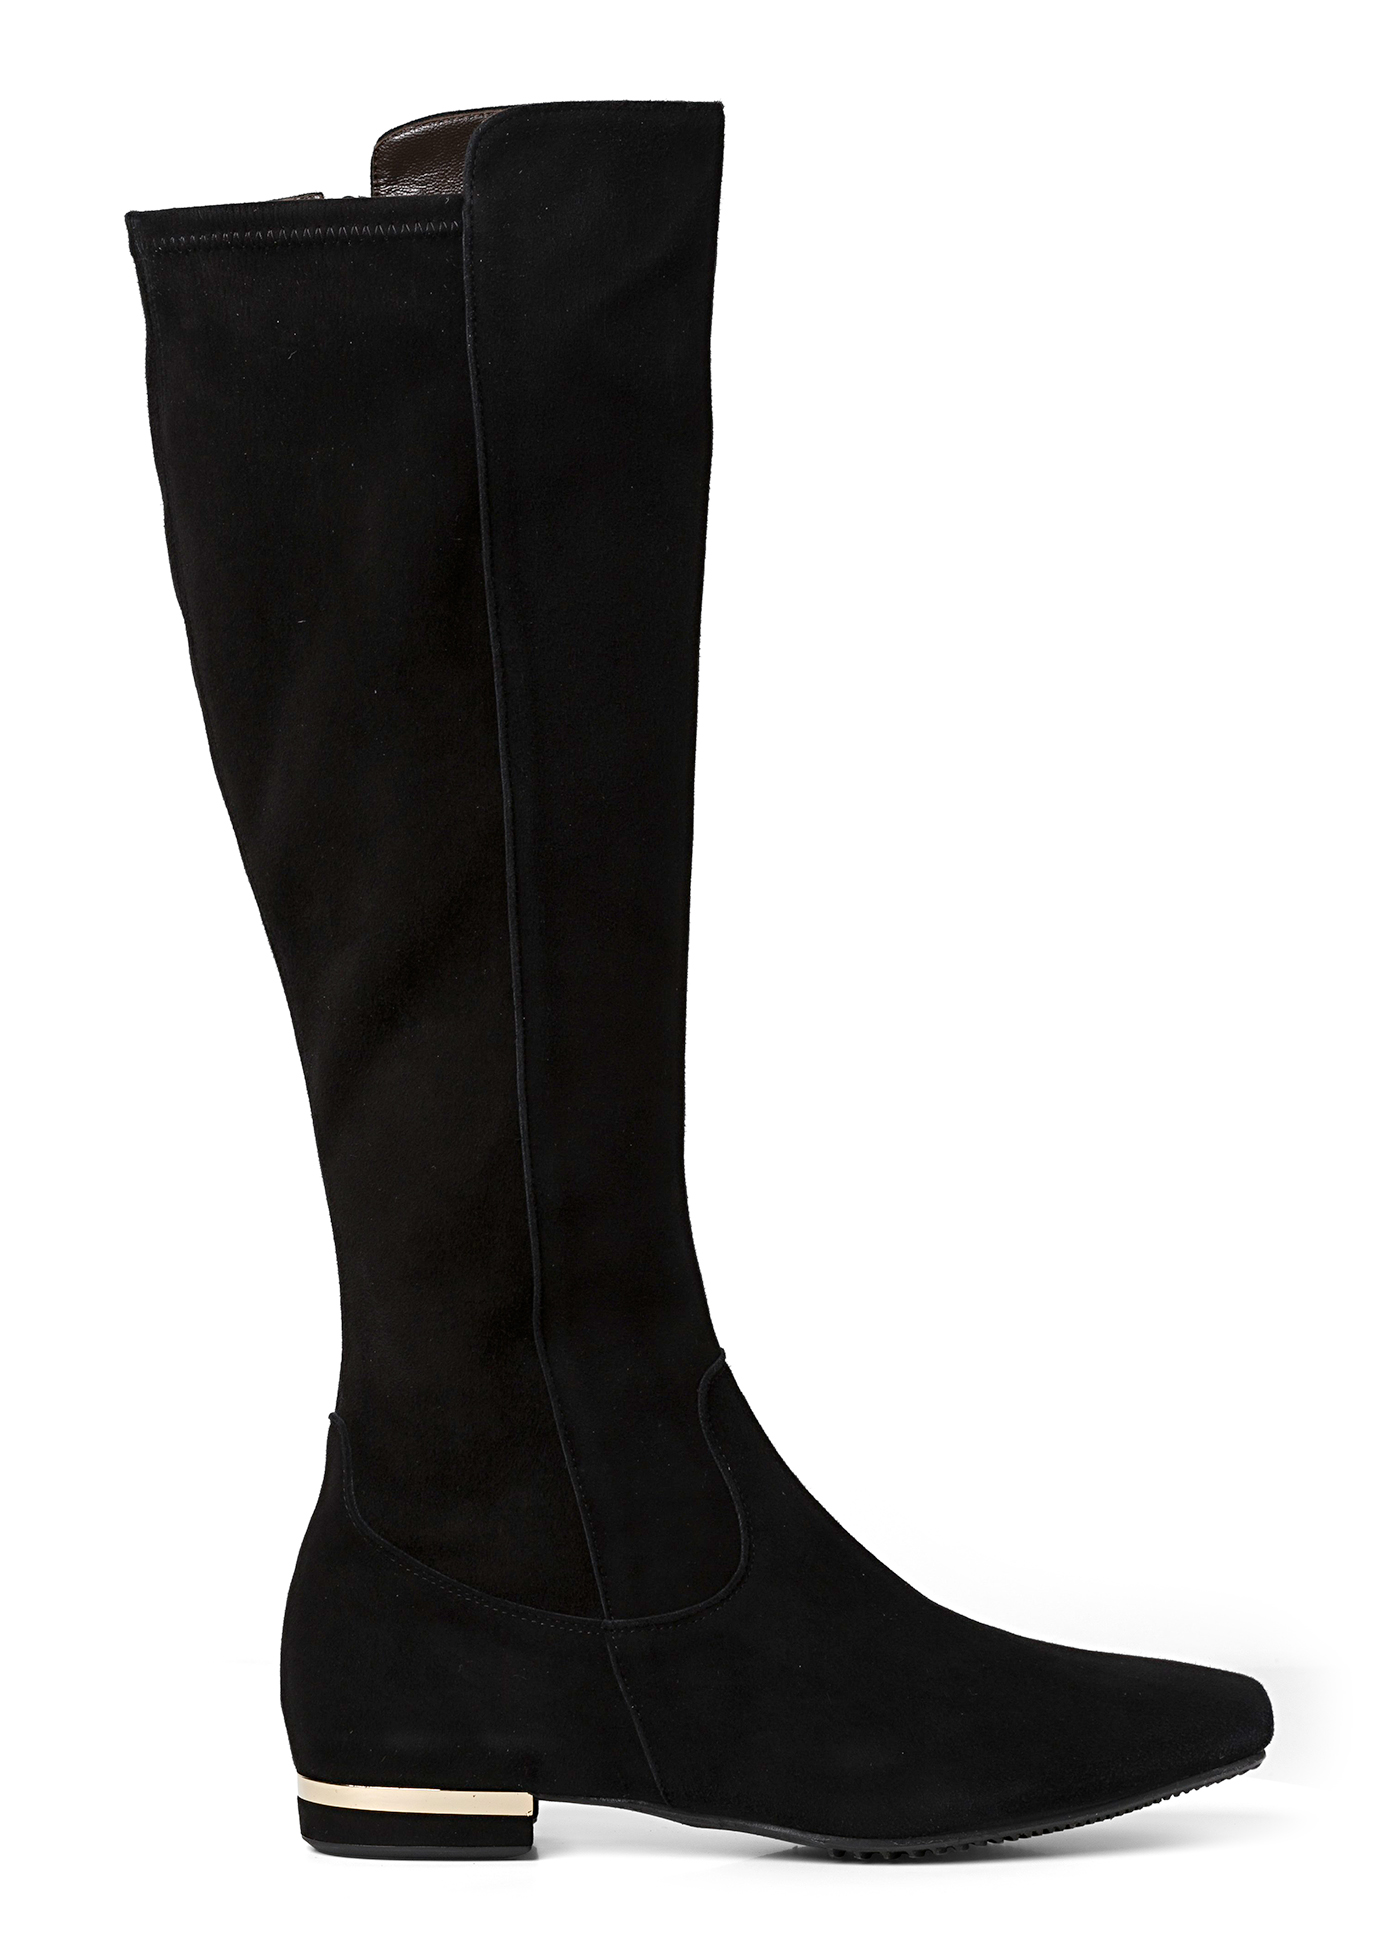 VELOUR BOOT image number 0